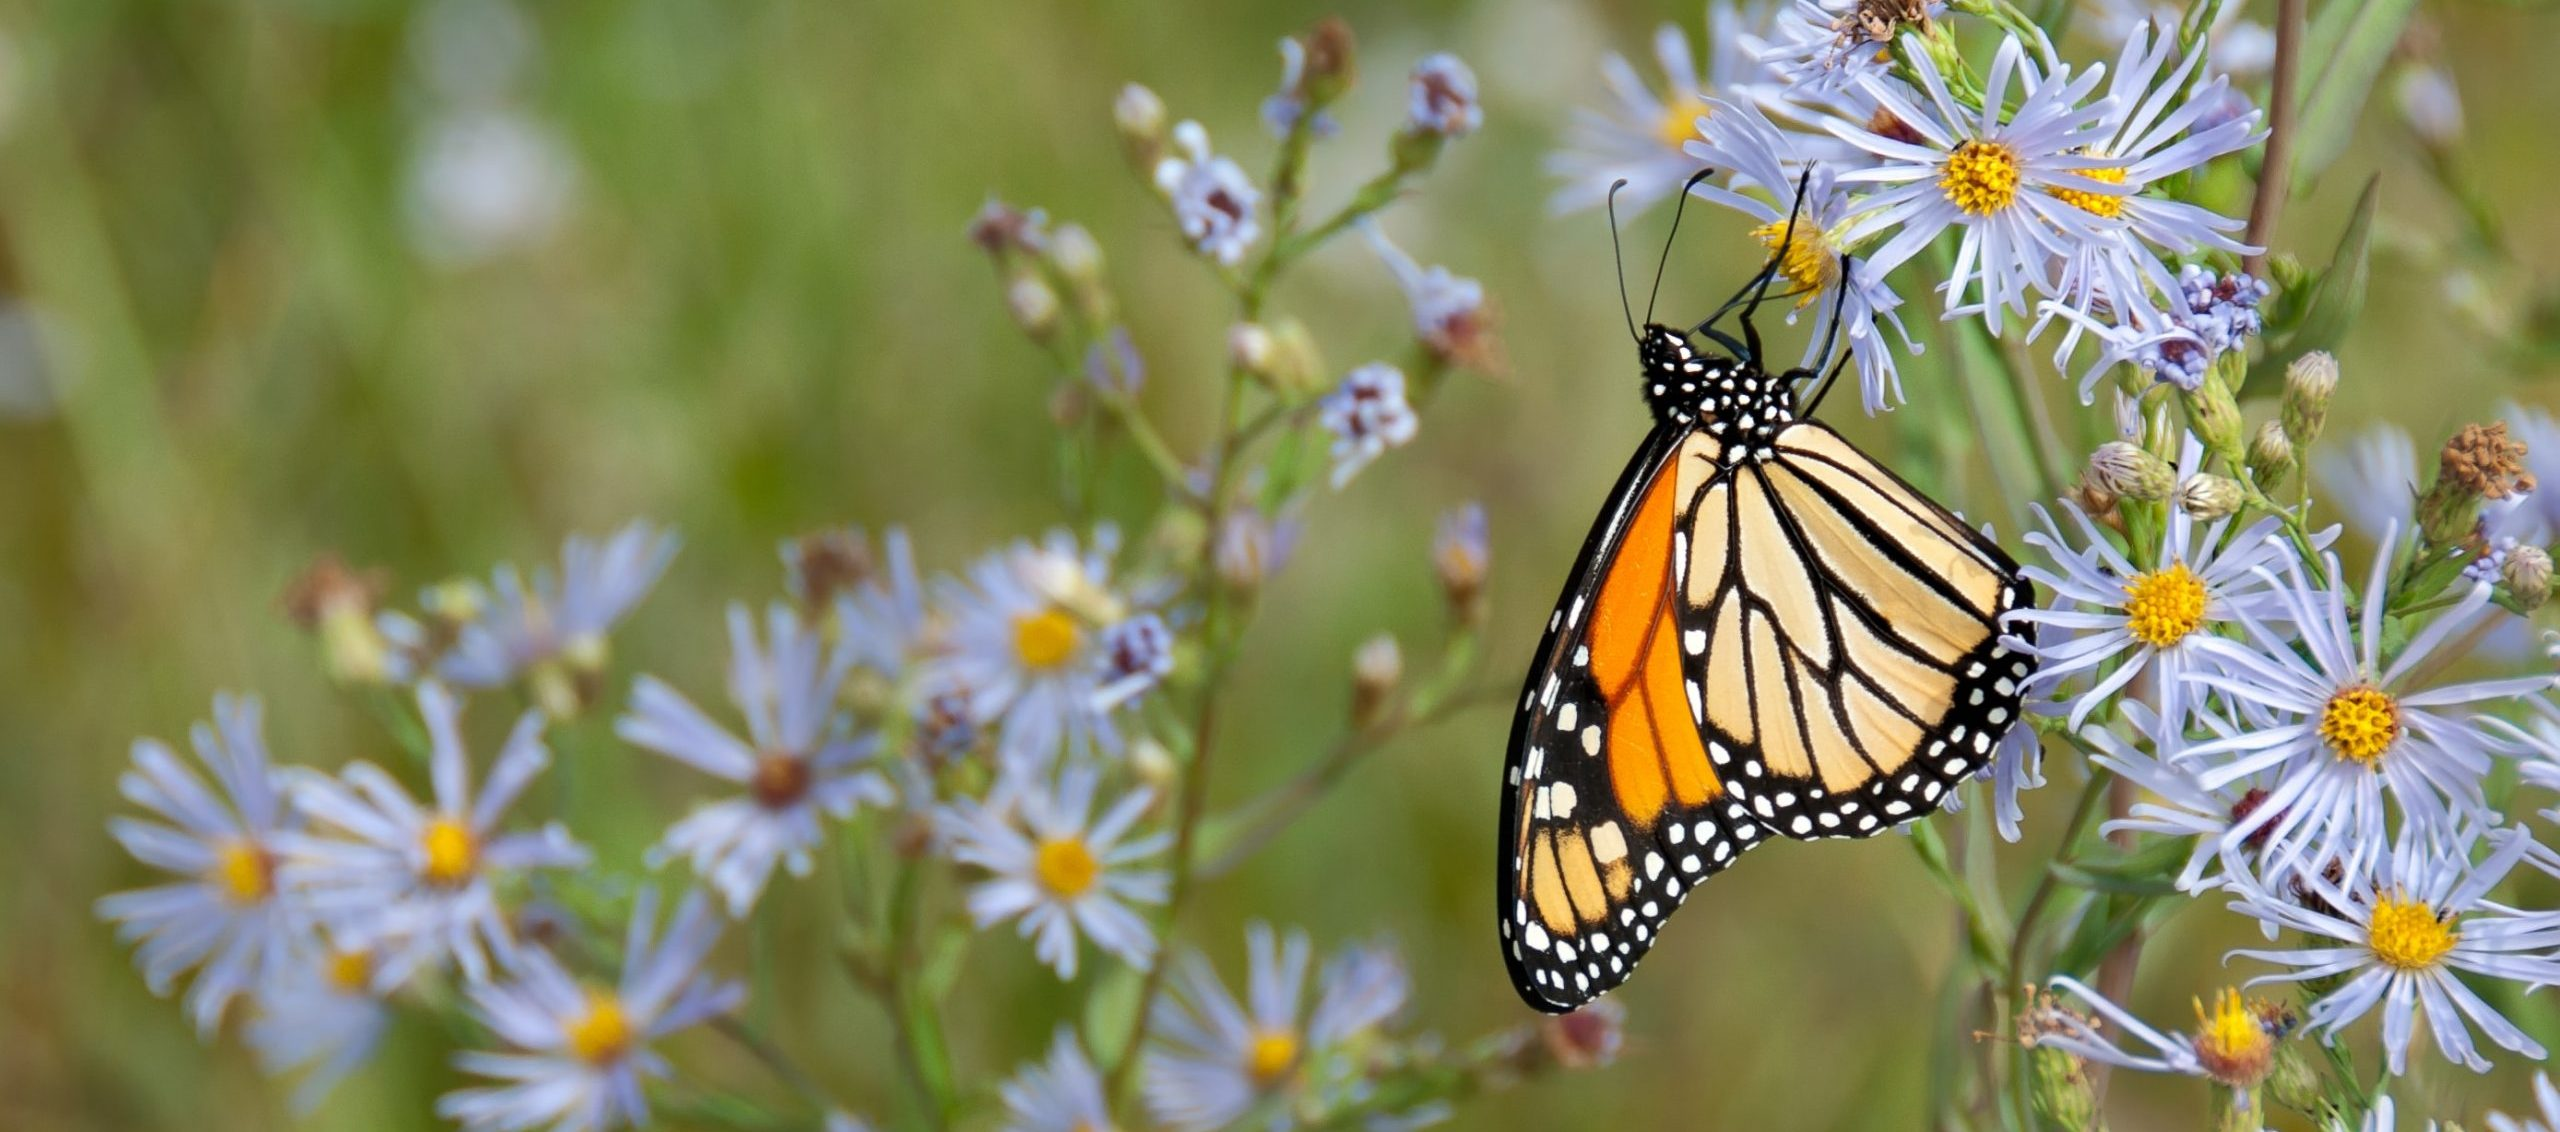 The Monarch Butterfly: On the Brink of Extinction but Denied Federal Protection